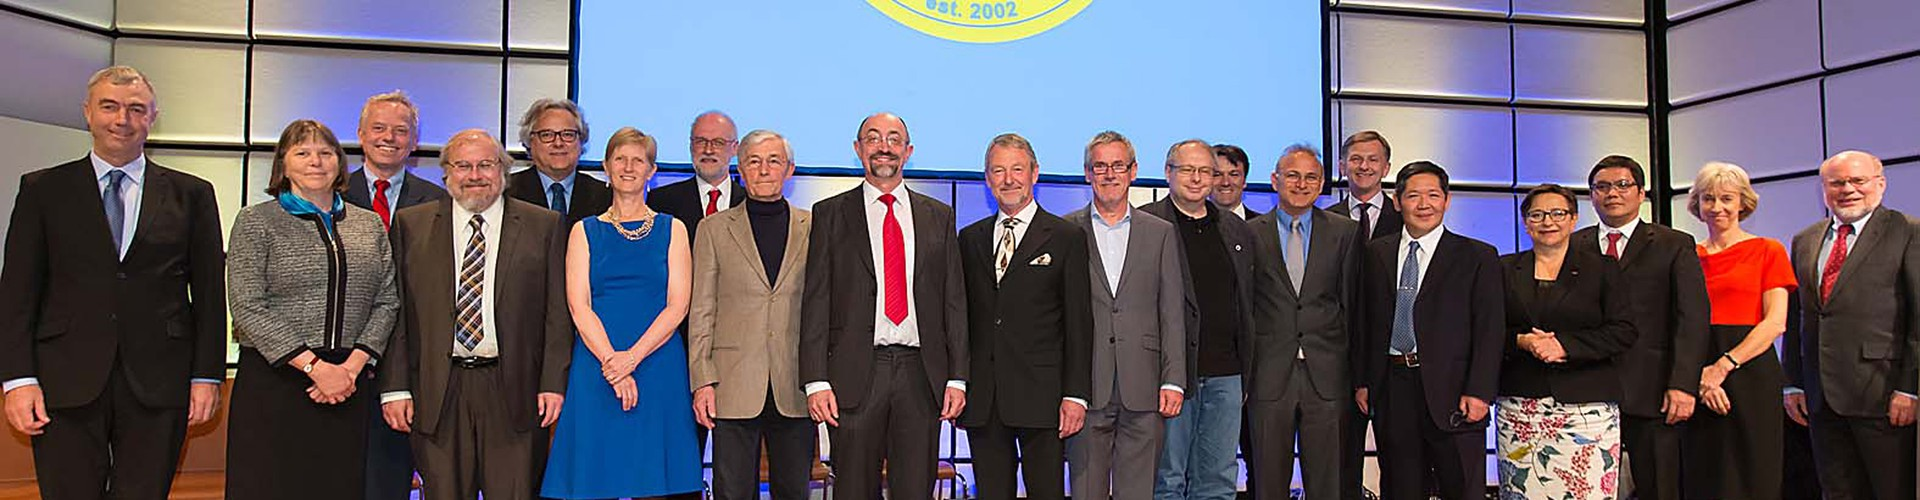 A few of last year's awardees with the EGU President and Vice-President at the EGU 2015 Awards Ceremony.